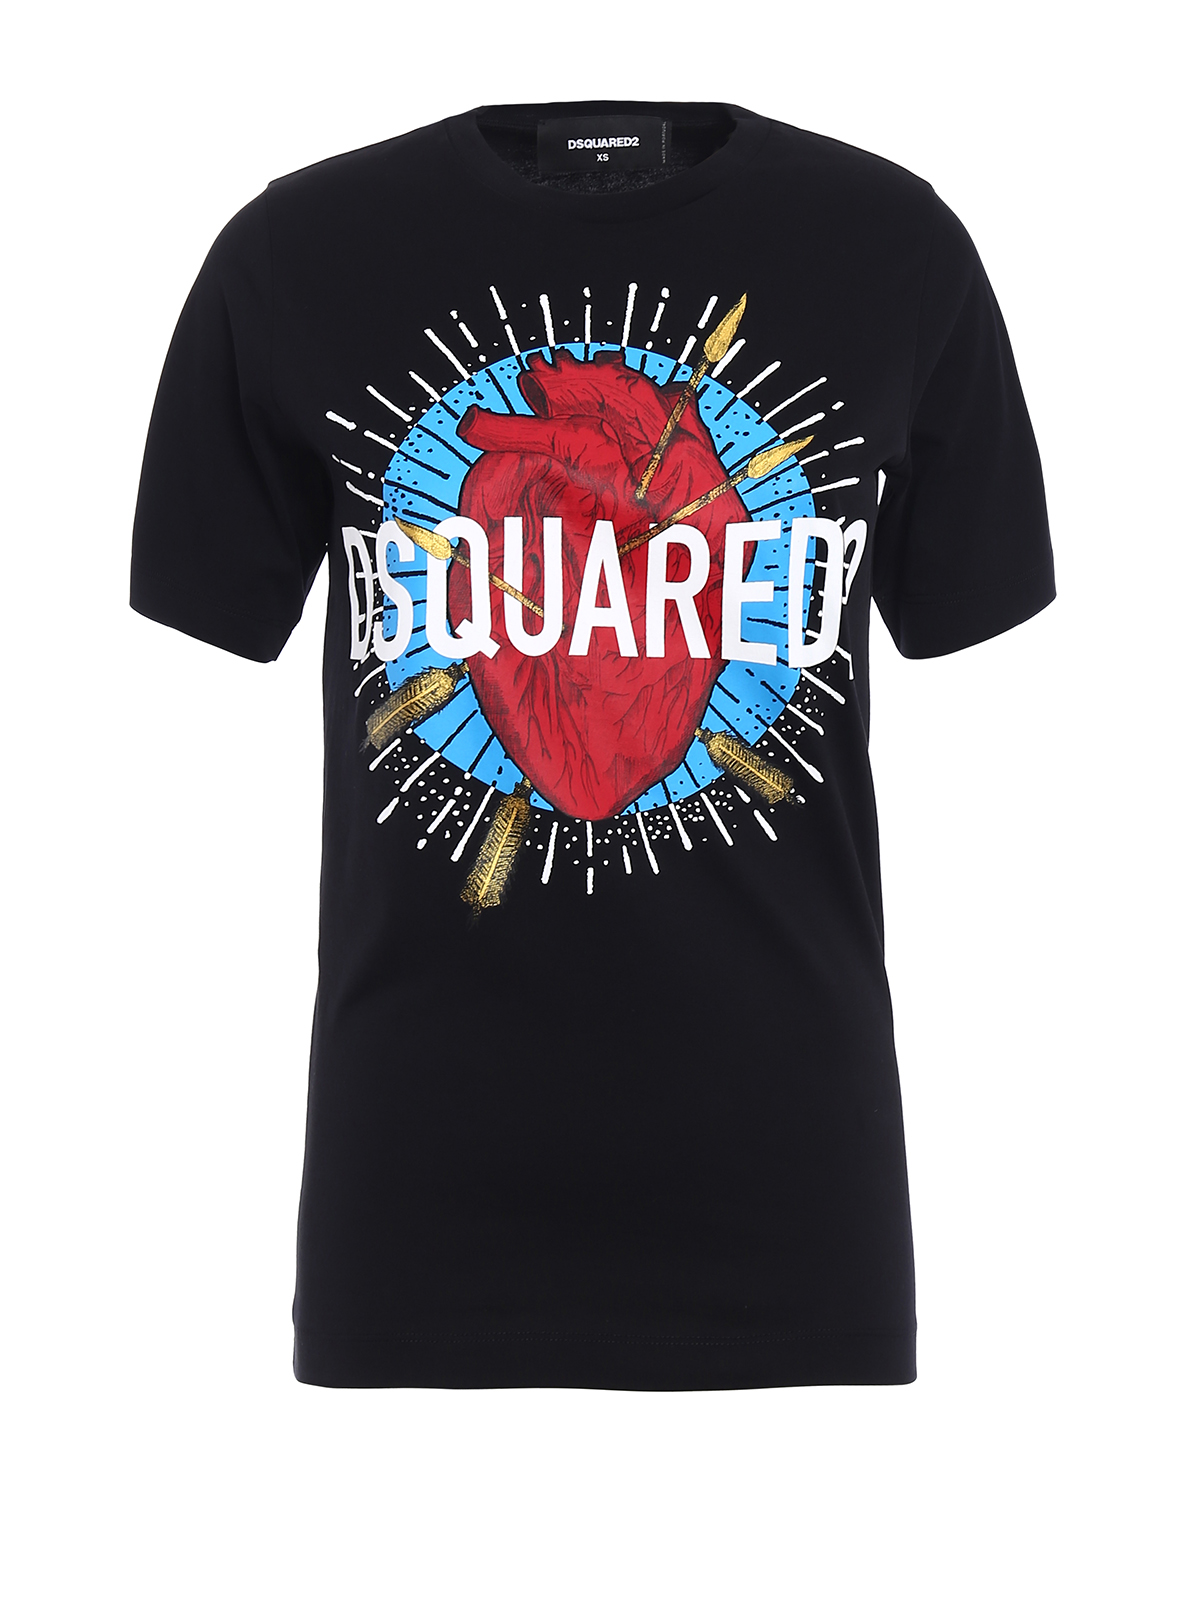 Logo print t shirt by dsquared2 t shirts shop online for Tee shirt logo printing